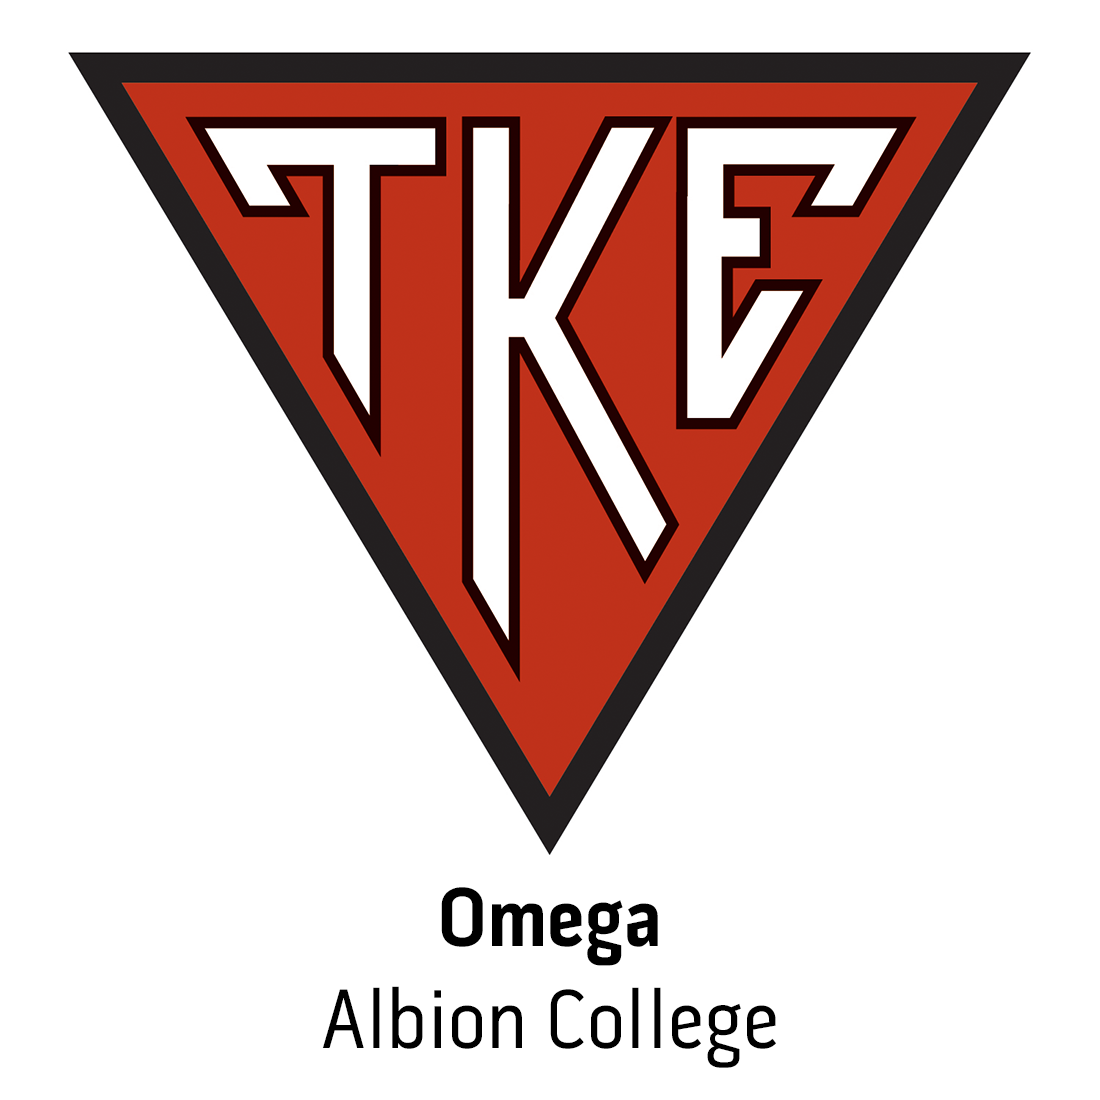 Omega C at Albion College